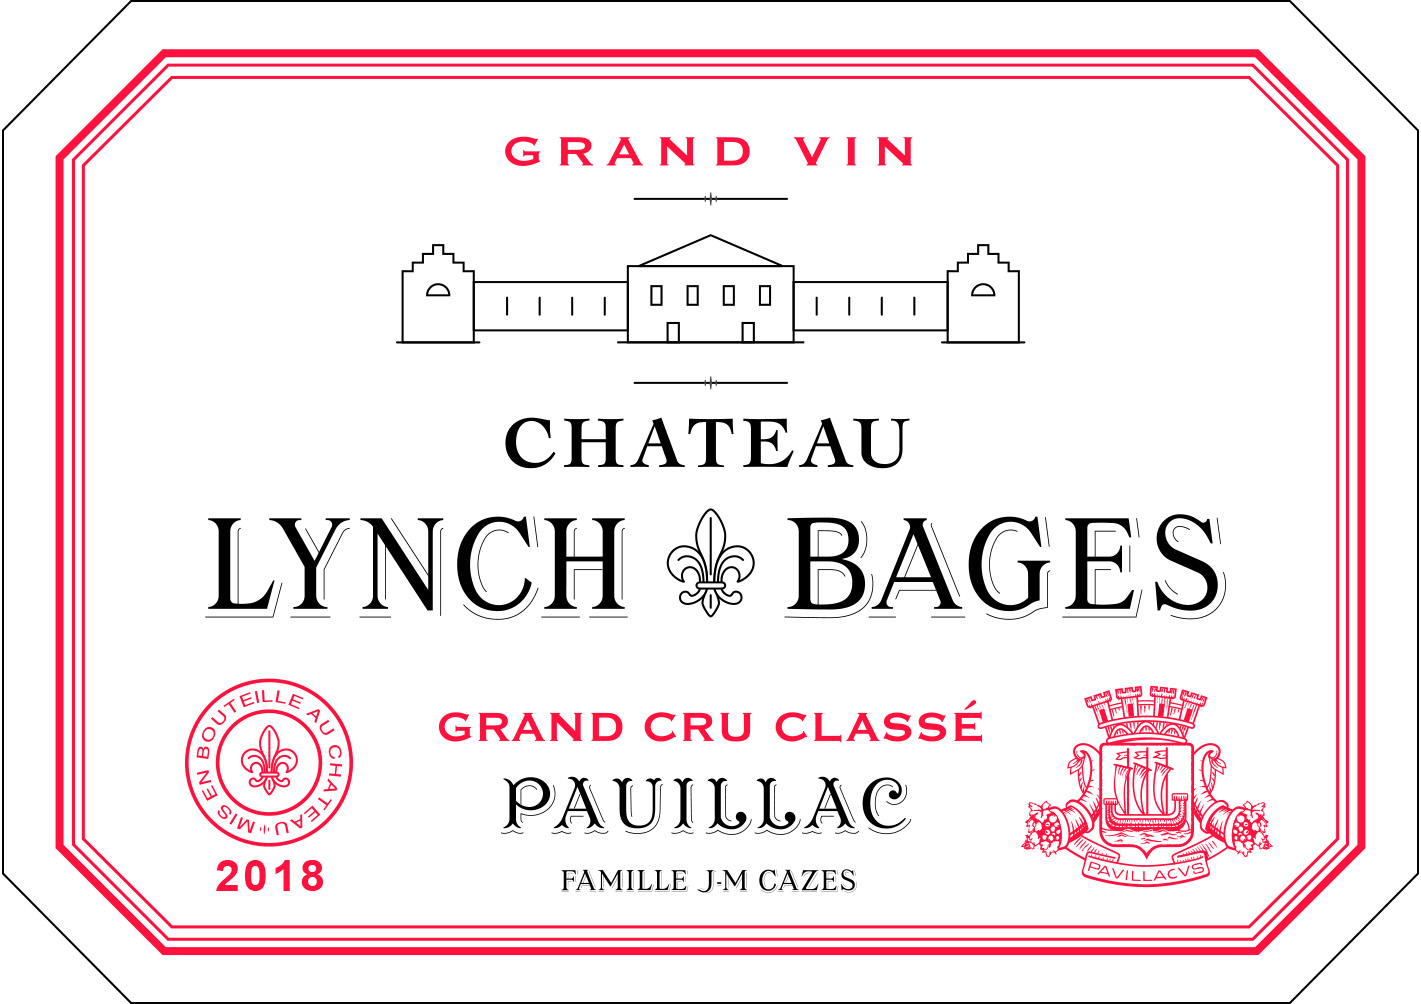 Lynch-Bages 2018